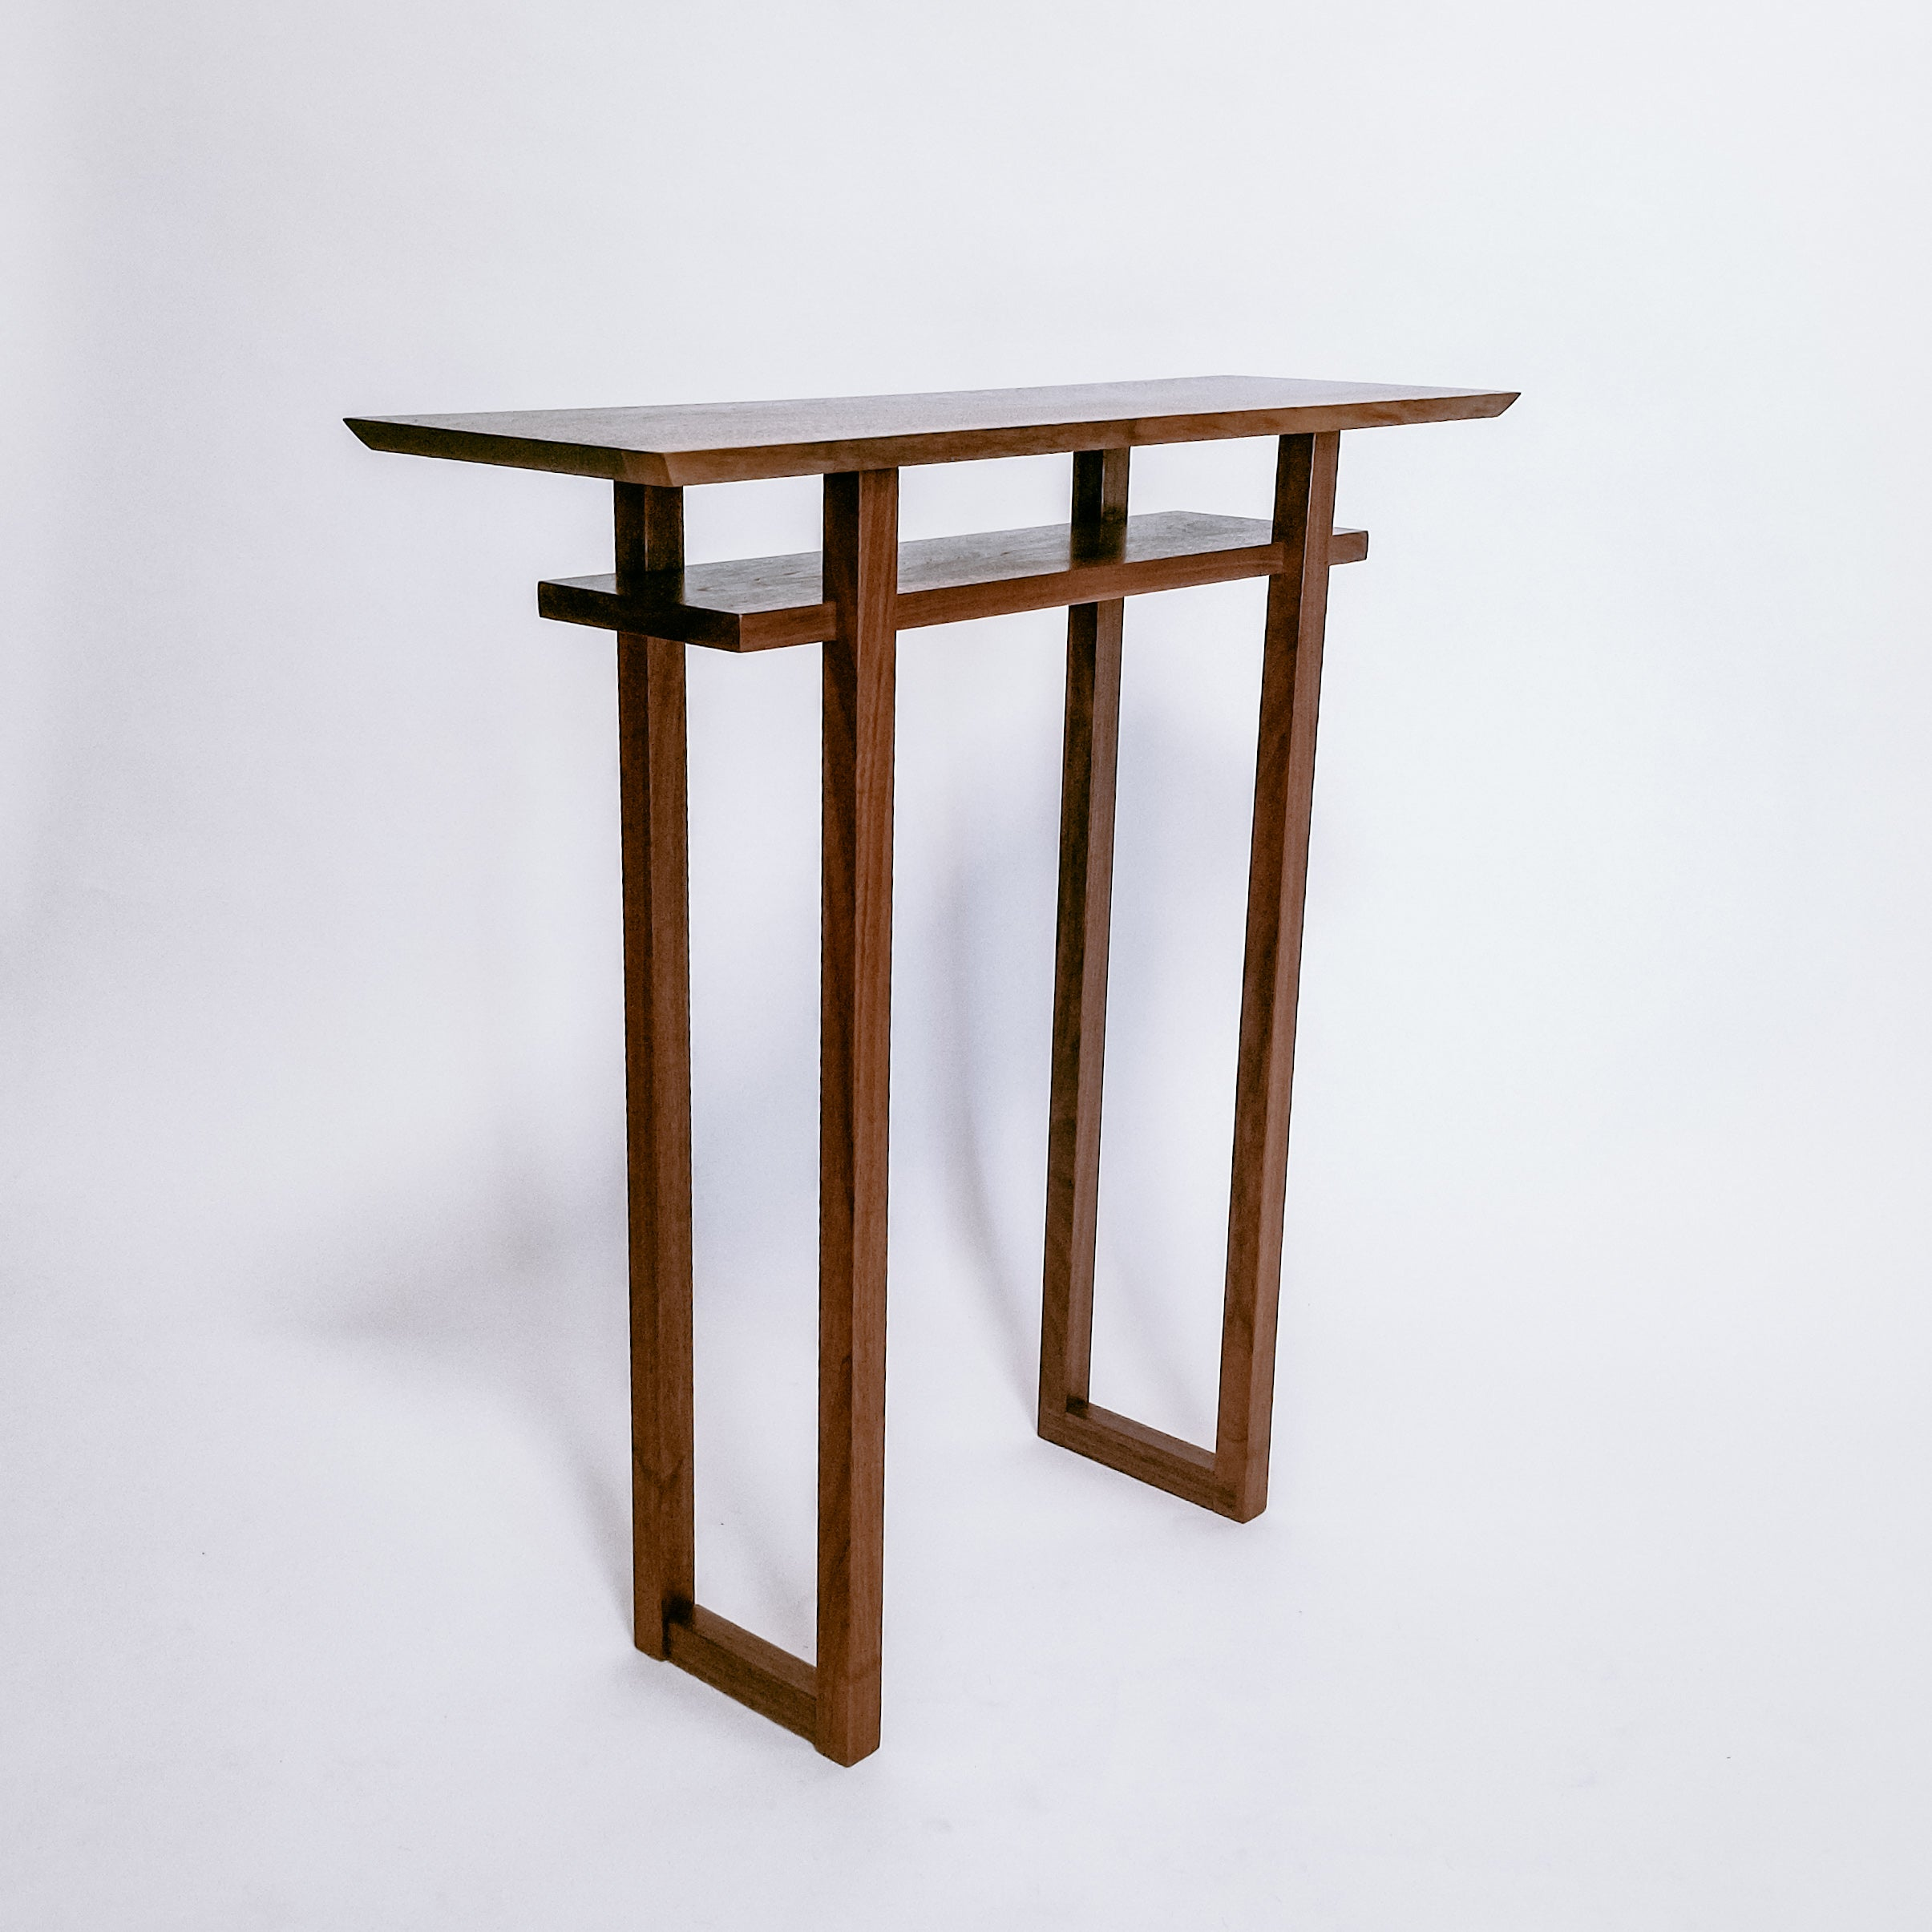 A minimalist console table, handmade from walnut, featuring a live edge table top and inset shelf